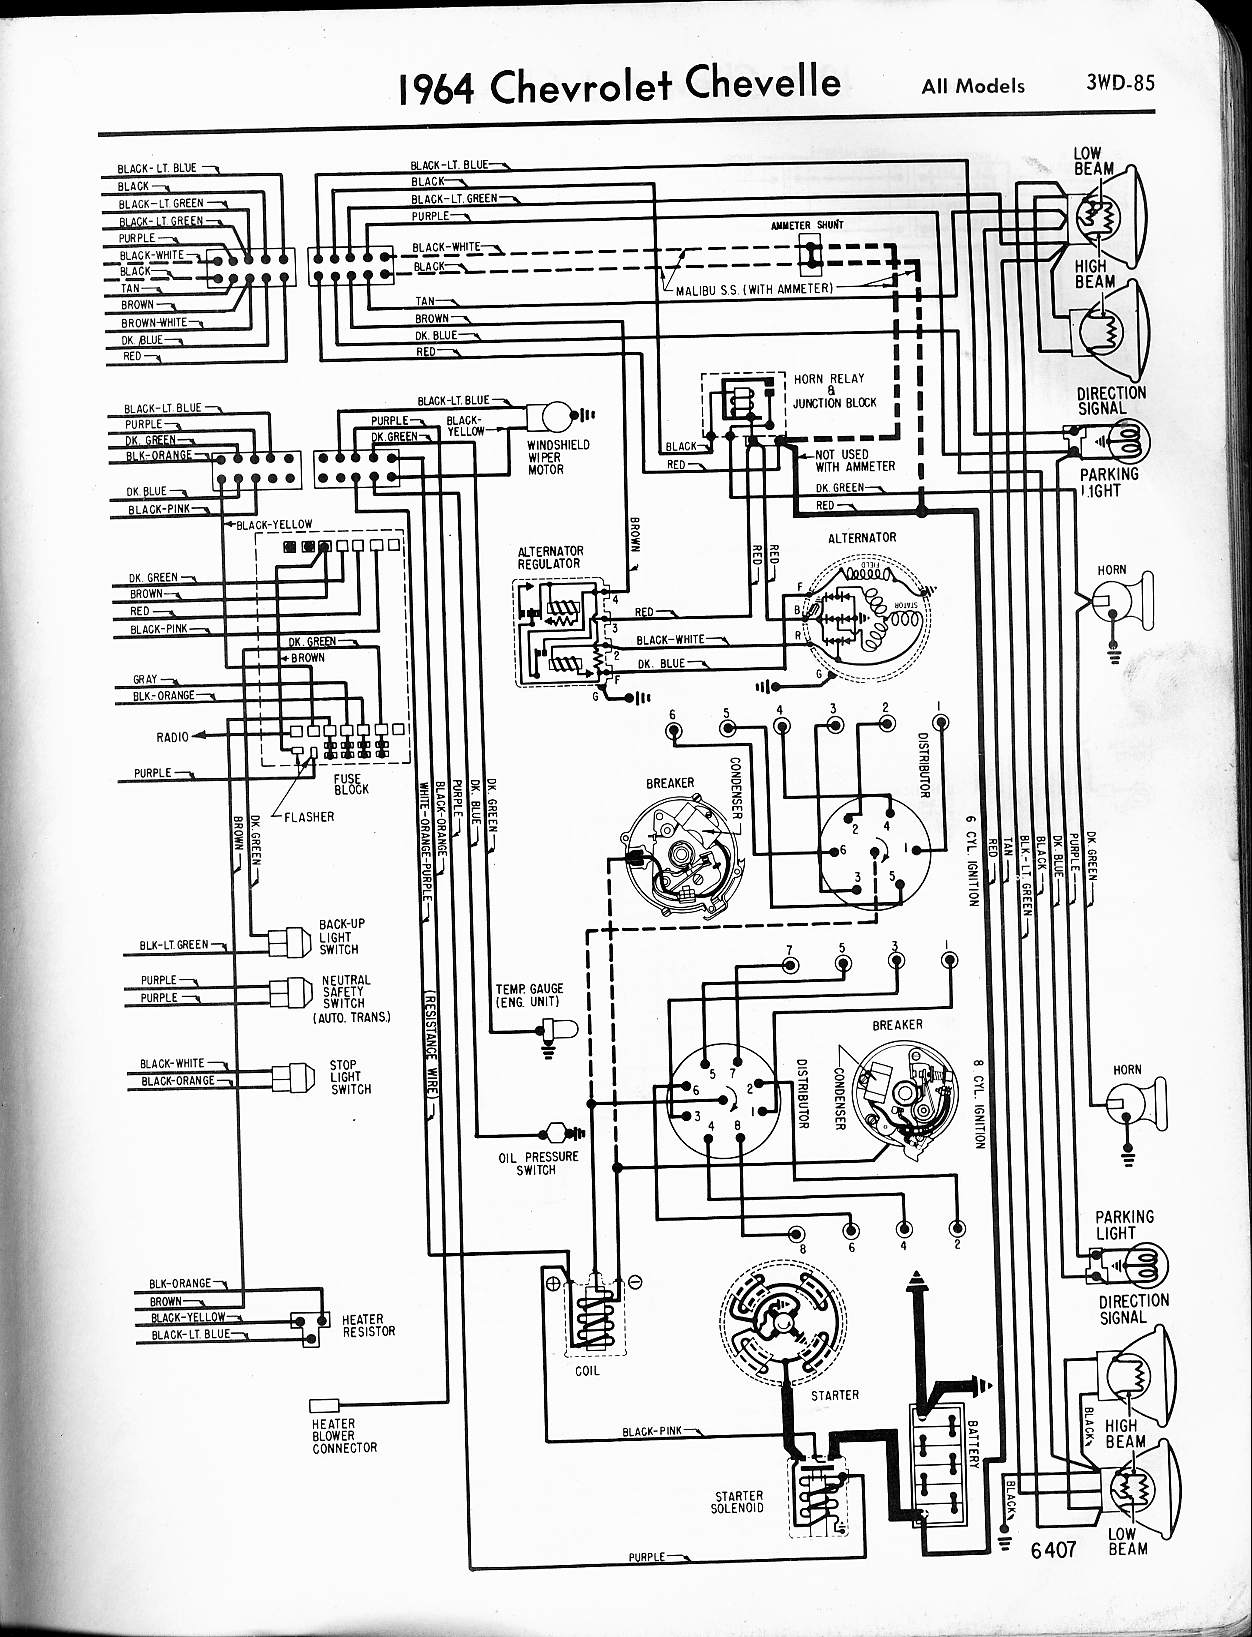 DIAGRAM] 68 Impala Convertible Wiring Diagram FULL Version HD Quality Wiring  Diagram - LAXLABORATORY.JTNETTOYAGE.FRlaxlaboratory.jtnettoyage.fr